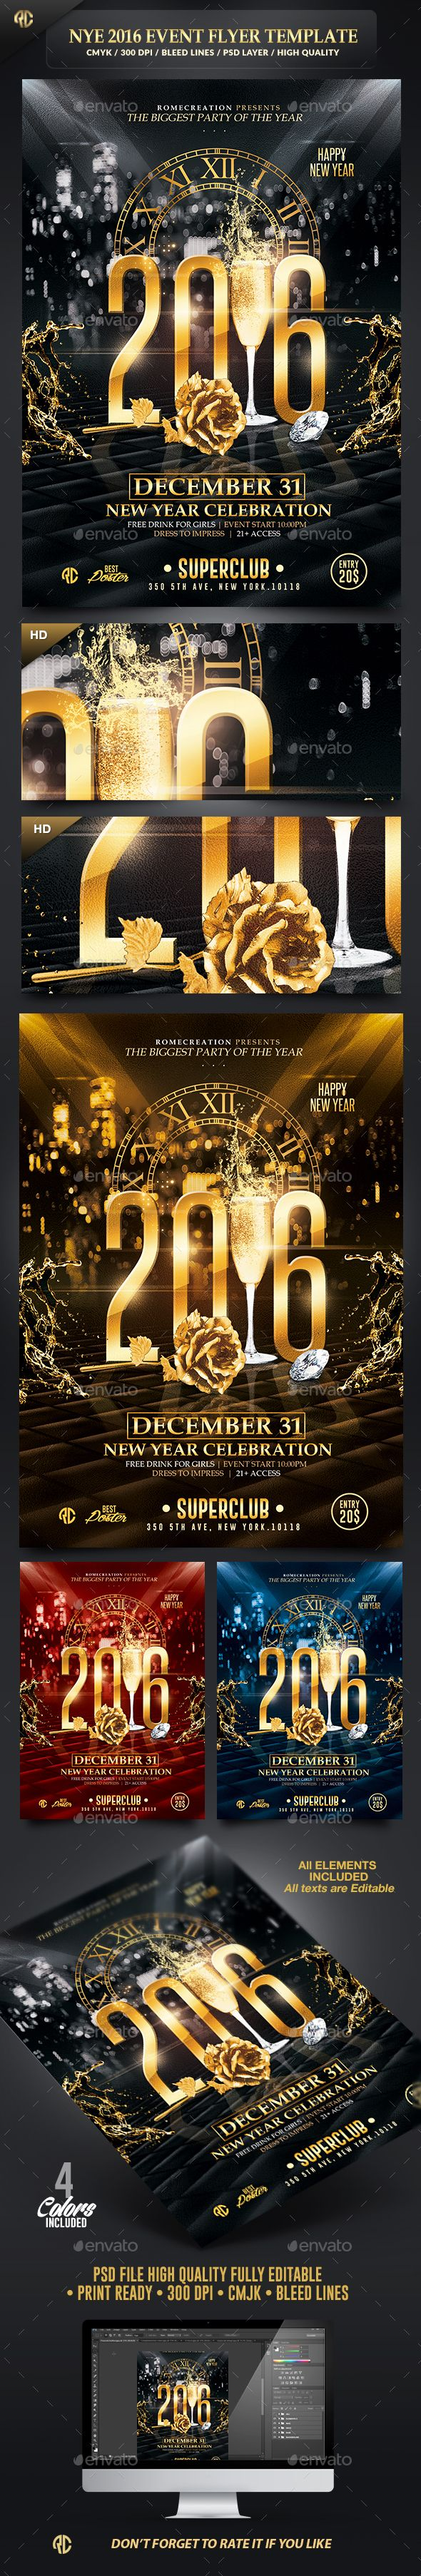 best images about party flyers ideas dj party new year event 2016 psd flyer template